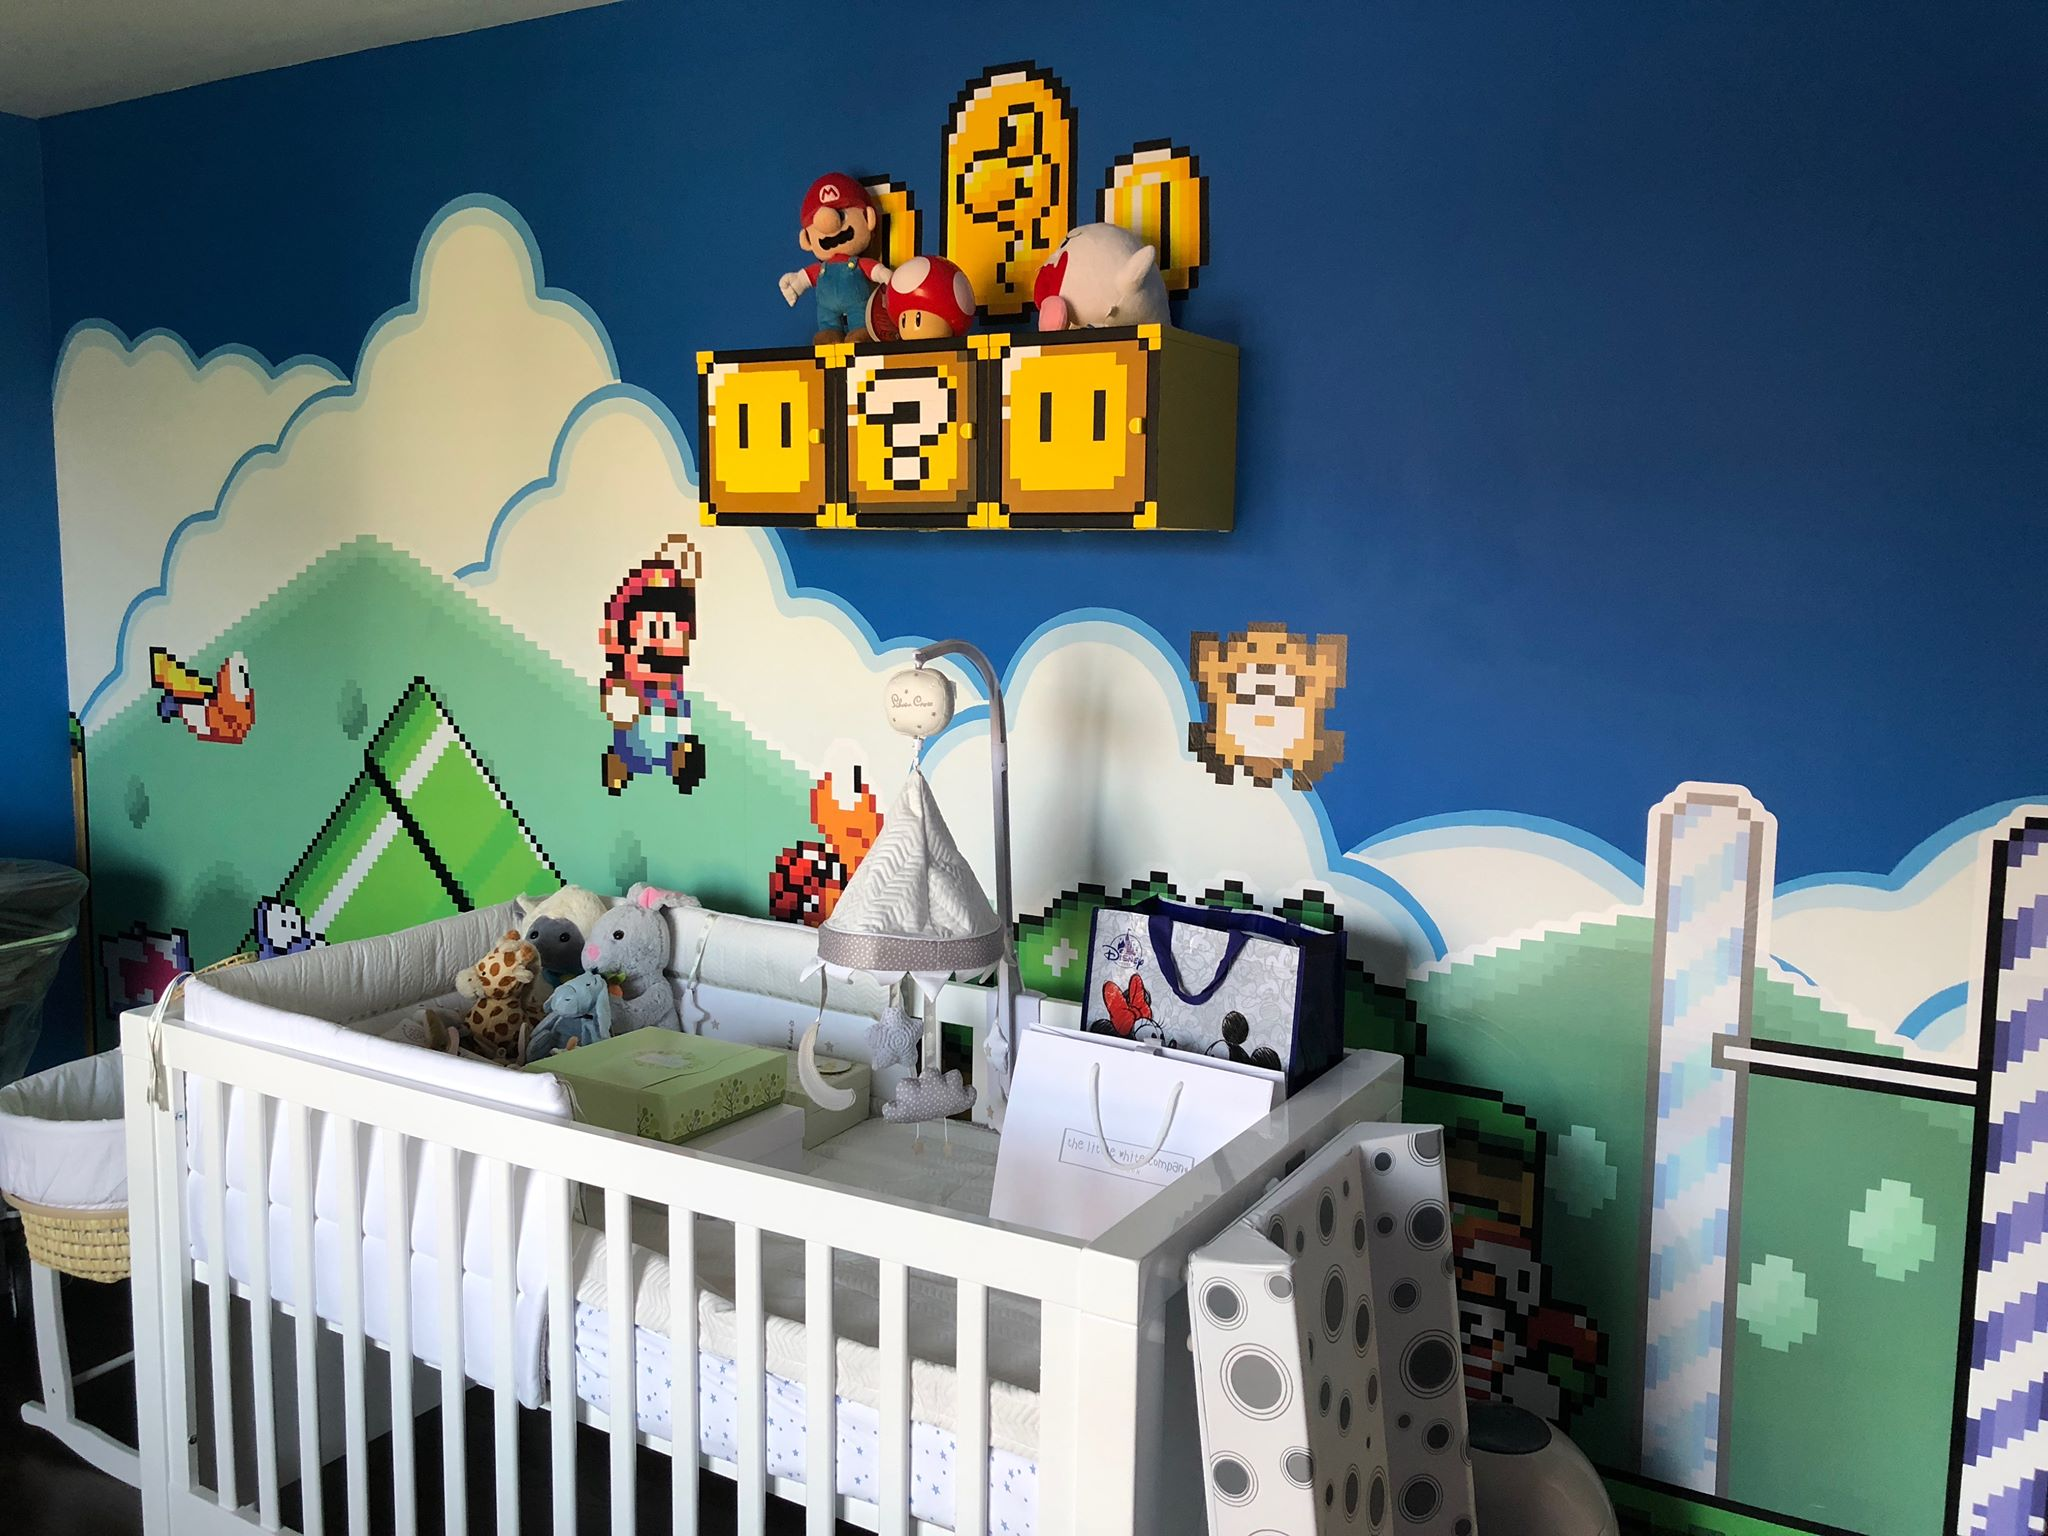 I made a Super Mario Themed Nursery